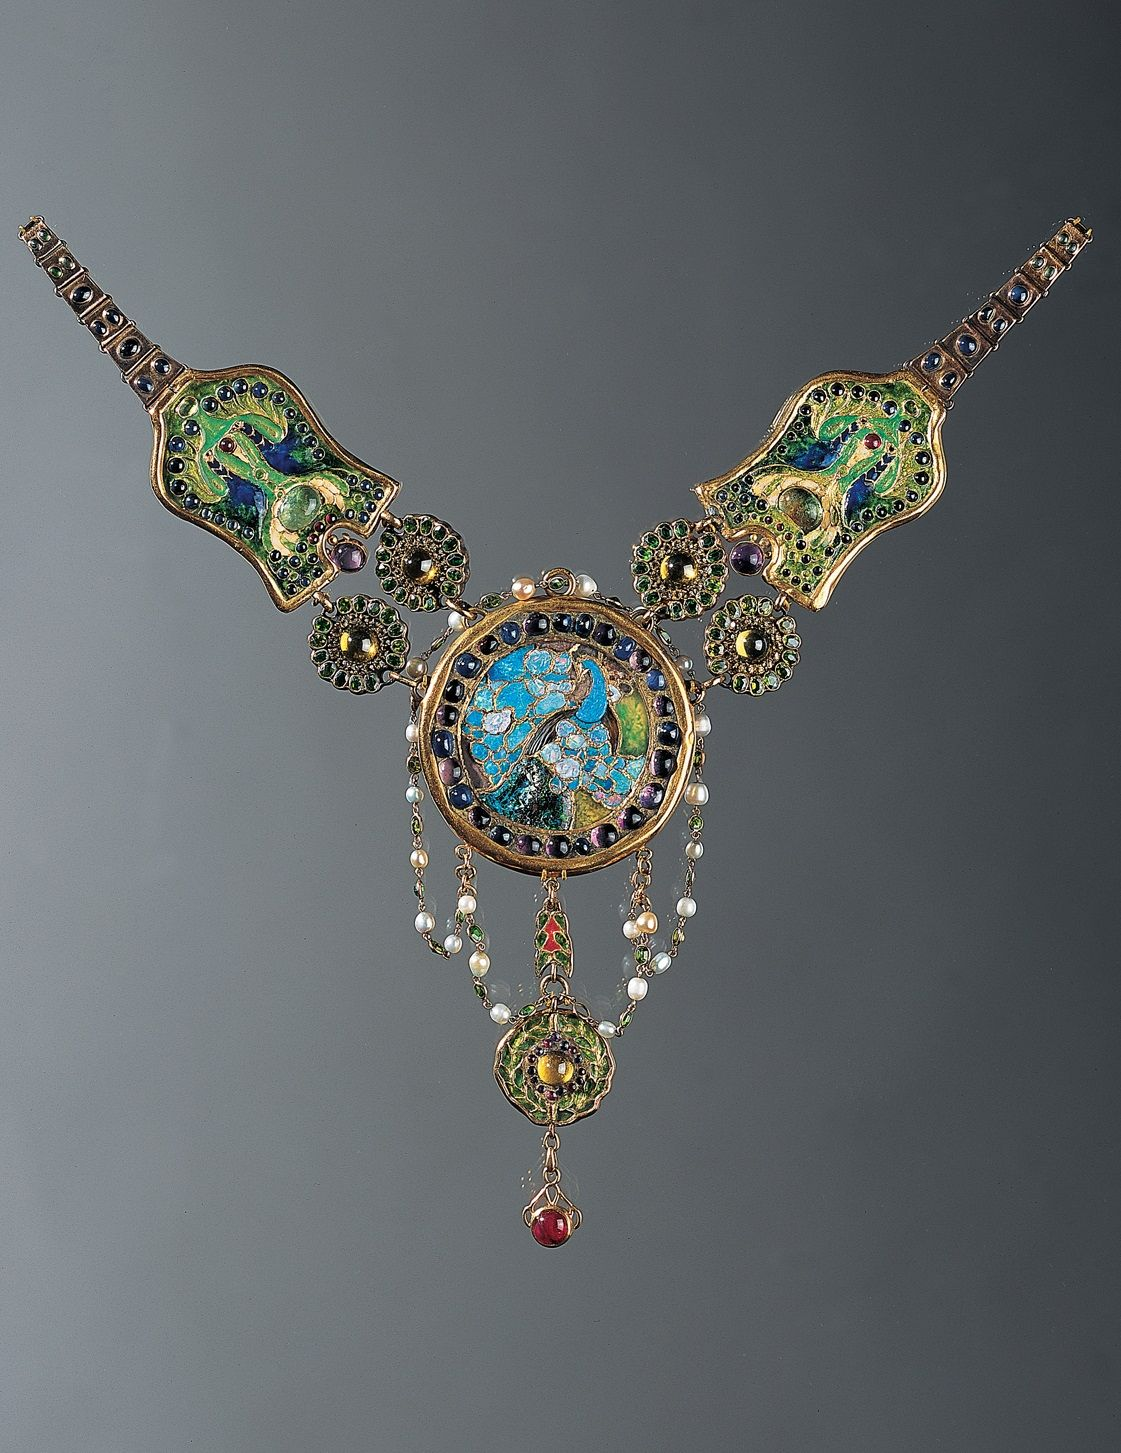 'Peacock and Flamingo' necklace, by Louis Comfort Tiffany for Tiffany & Co., executed by Julia Munson [Sherman], circa 1903. Exhibited at Salon of the Société des Artistes Français, Paris, 1906. Composed of enamel, opal, amethysts, rubies, sapphires, demantoid garnets, emeralds, chrysoberyls, pearls and gold. Signed TIFFANY & Co.